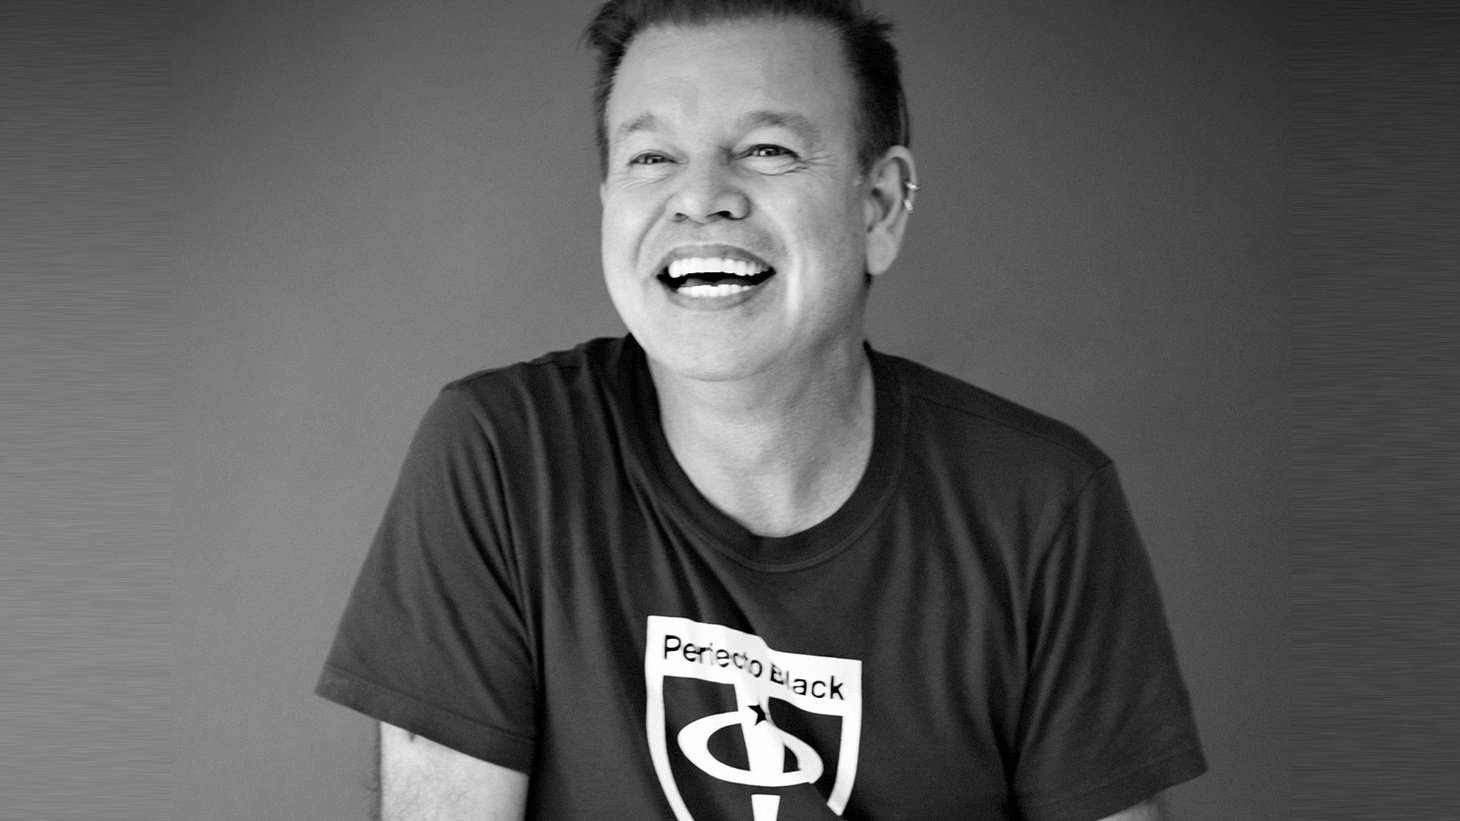 For over three decades Paul Oakenfold has shaped the dance music genre and remains one of the leading forces in the electronic music scene worldwide. (10am)